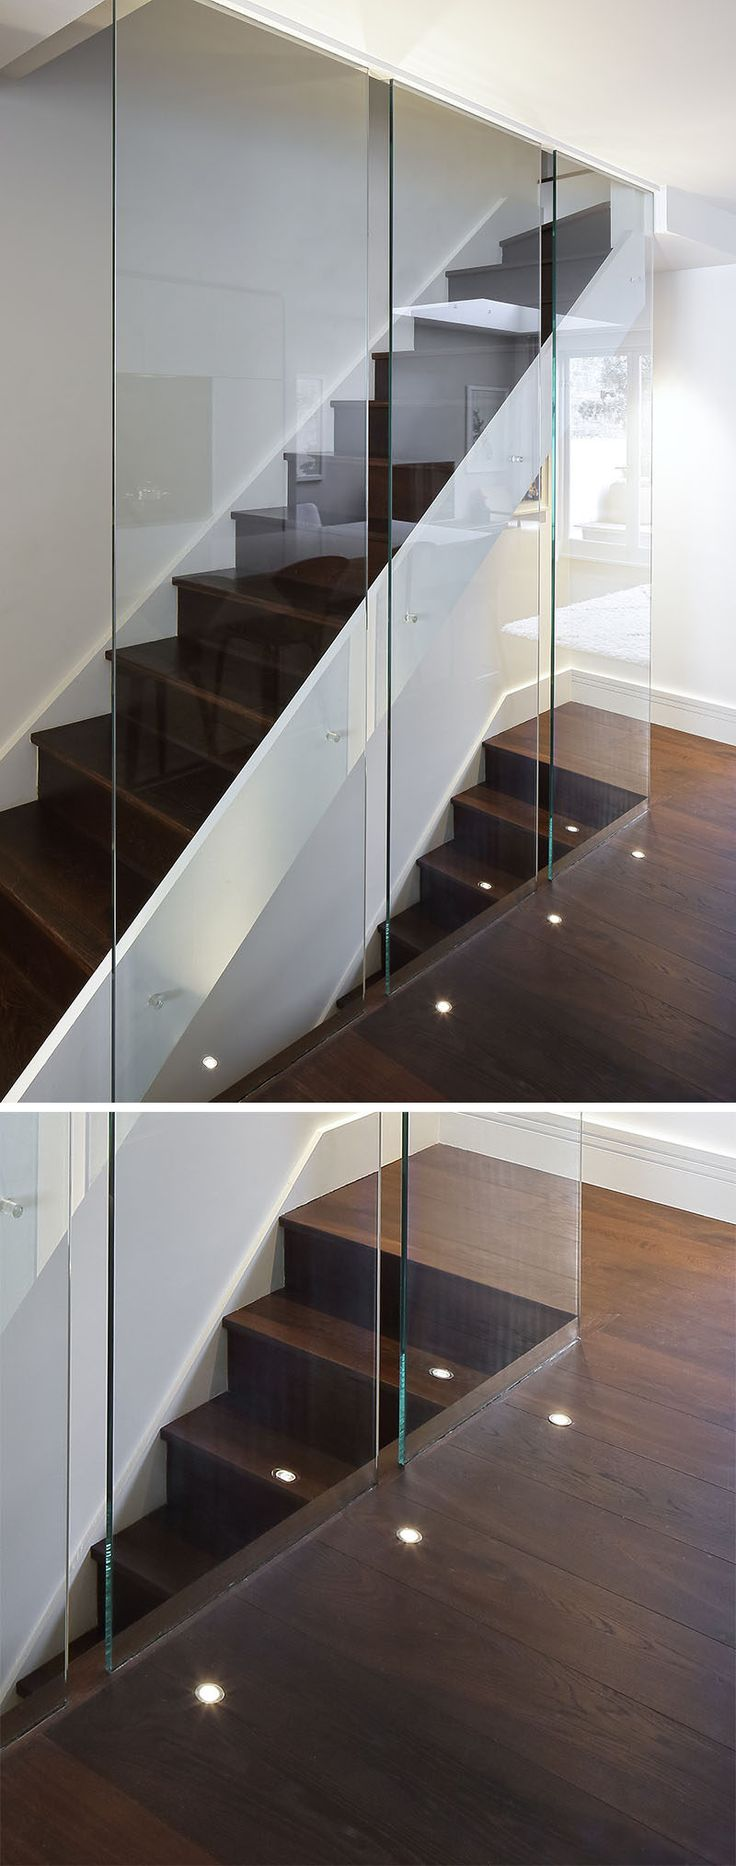 home interior design stairs%0A   Interiors That Use Dramatic Uplighting To Brighten A Space    Small  lights built into the floor of this home brighten the dark wood floor and  contribute